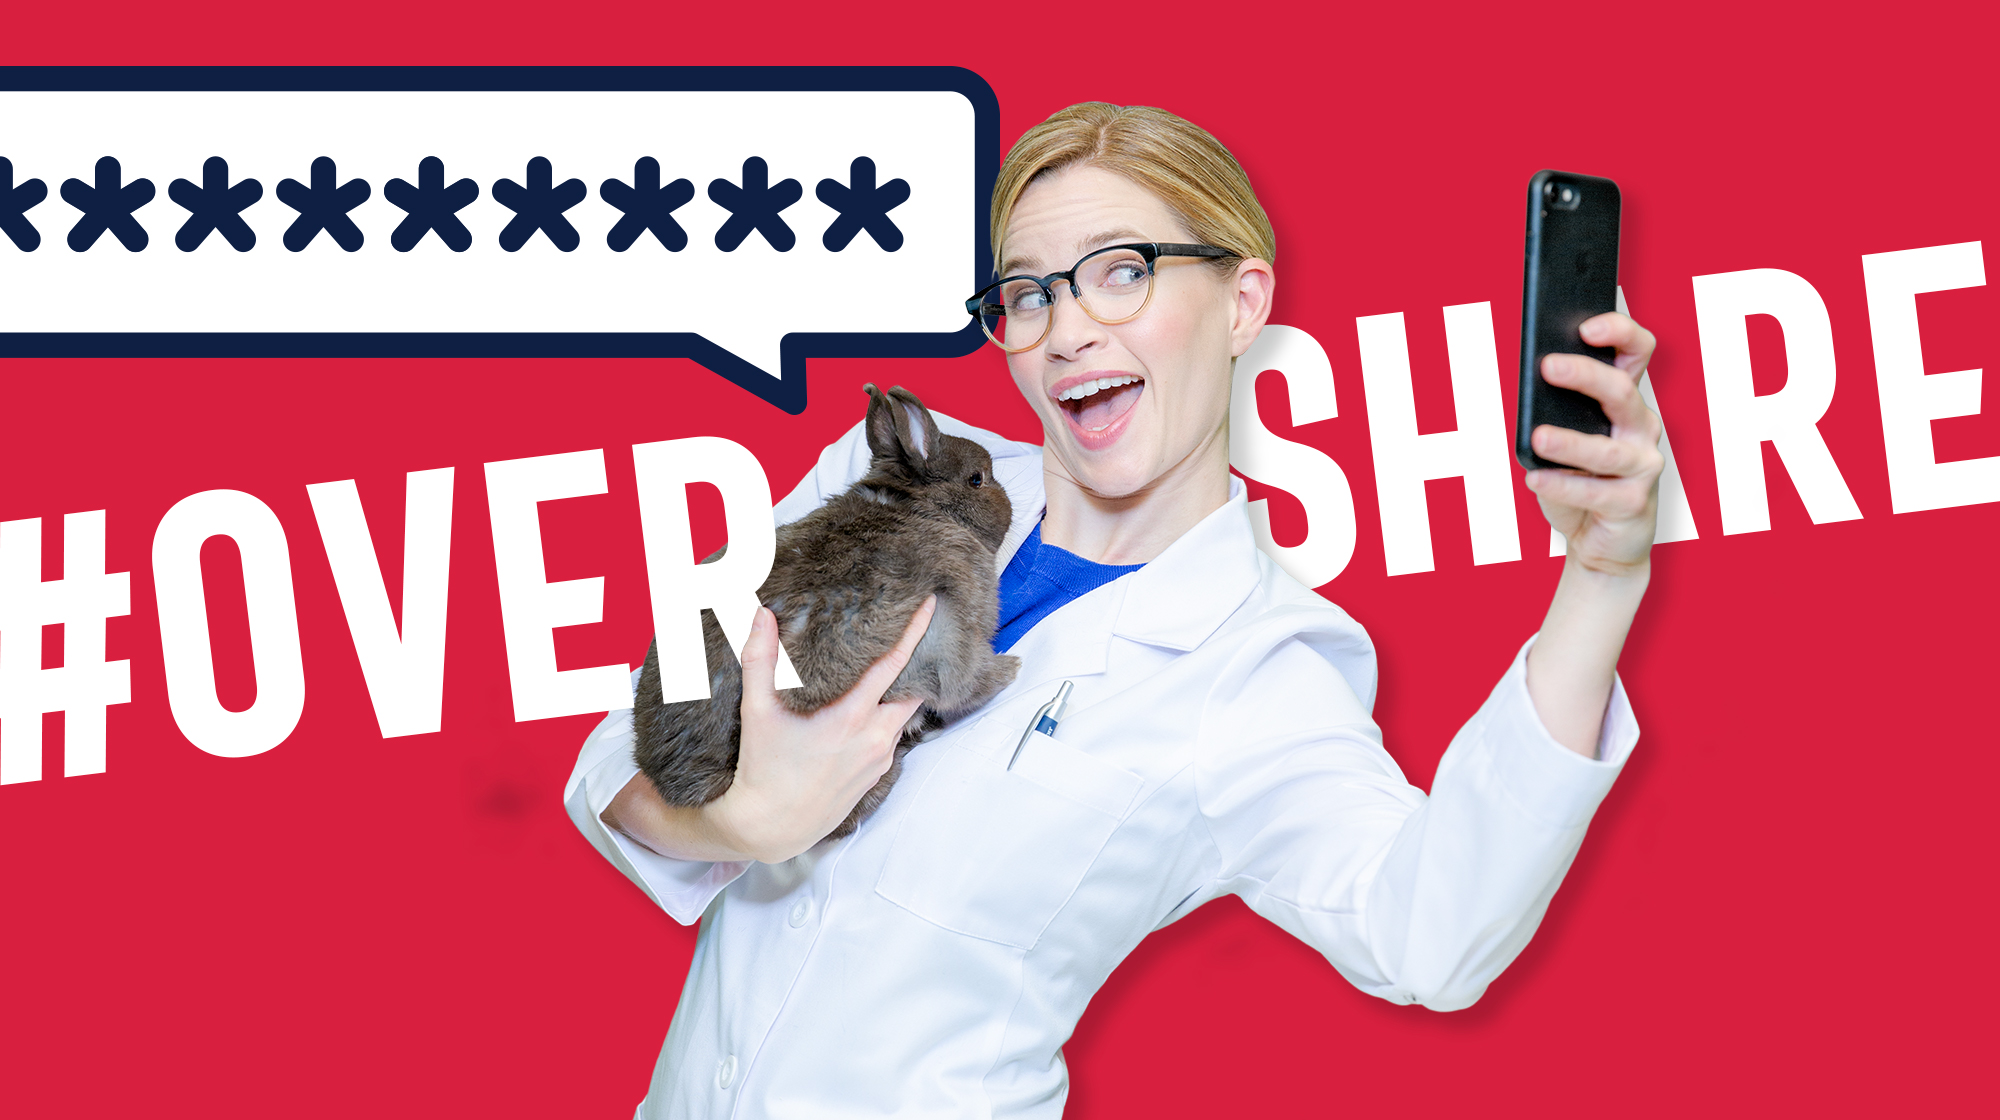 The hashtag #Overshare appear behind a woman in a white lab coat holding a rabbit while taking a selfie